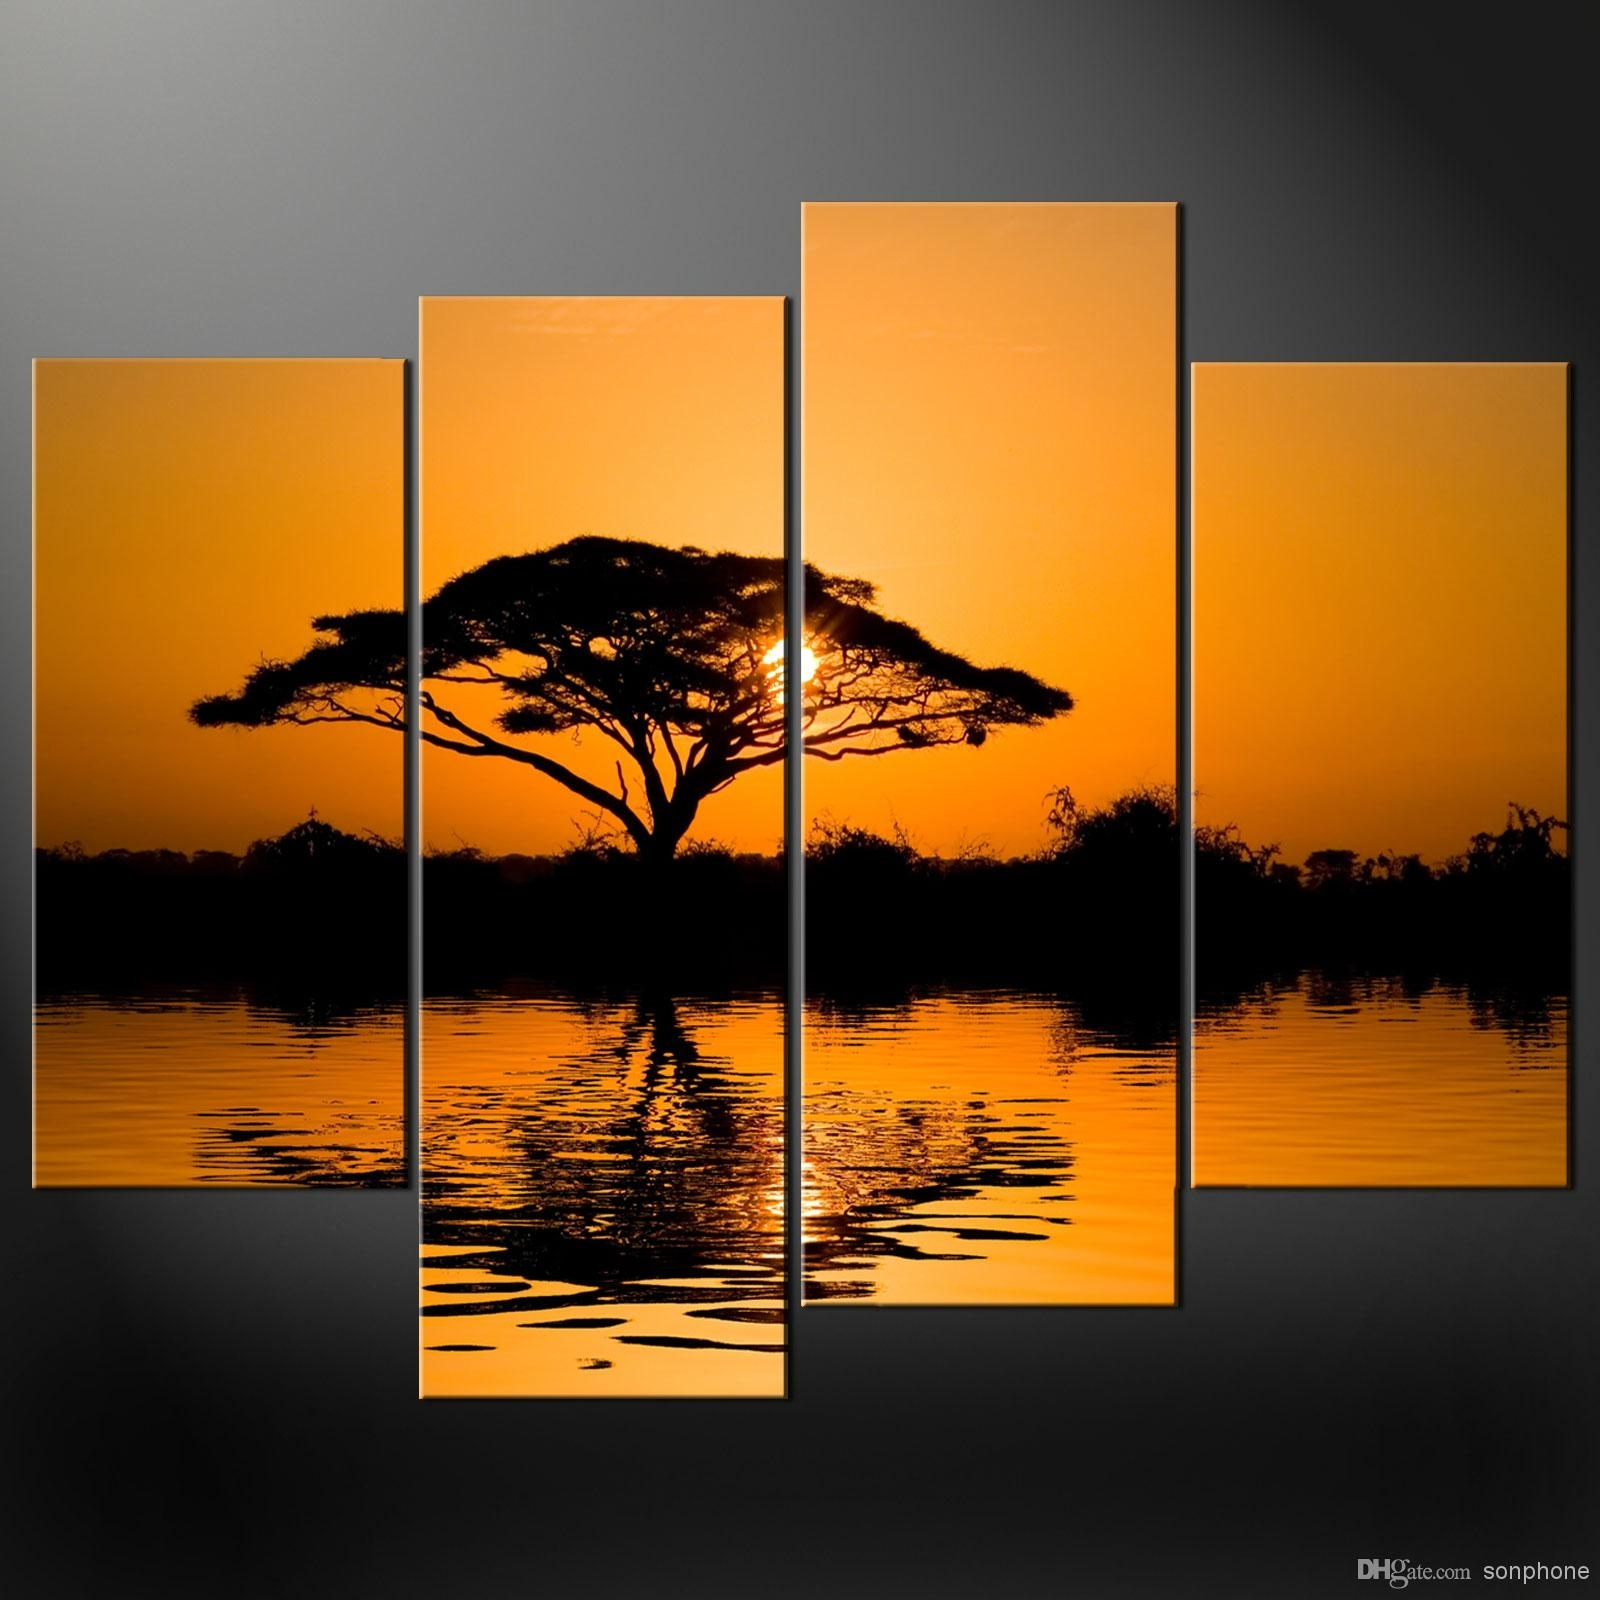 Framed 4 Panel Large African Wall Art Decor Modern Sunset Oil Intended For 4 Piece Wall Art (View 8 of 20)